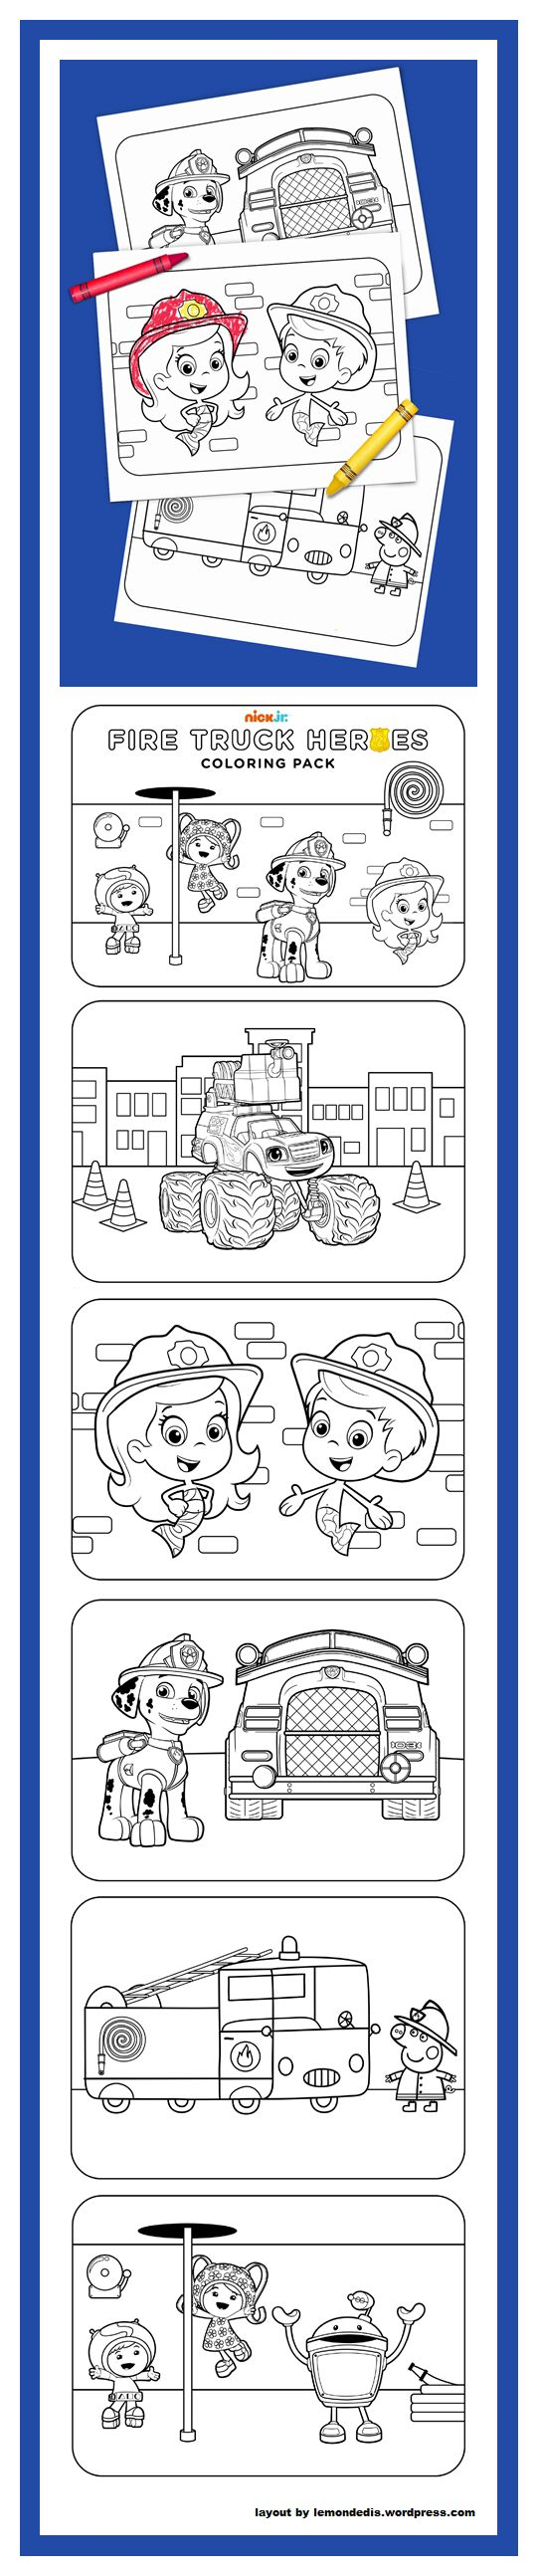 Ni nick jr games and coloring on online - Fire Truck Heroes Printable Coloring Pack Nick Jrnickelodeonfire